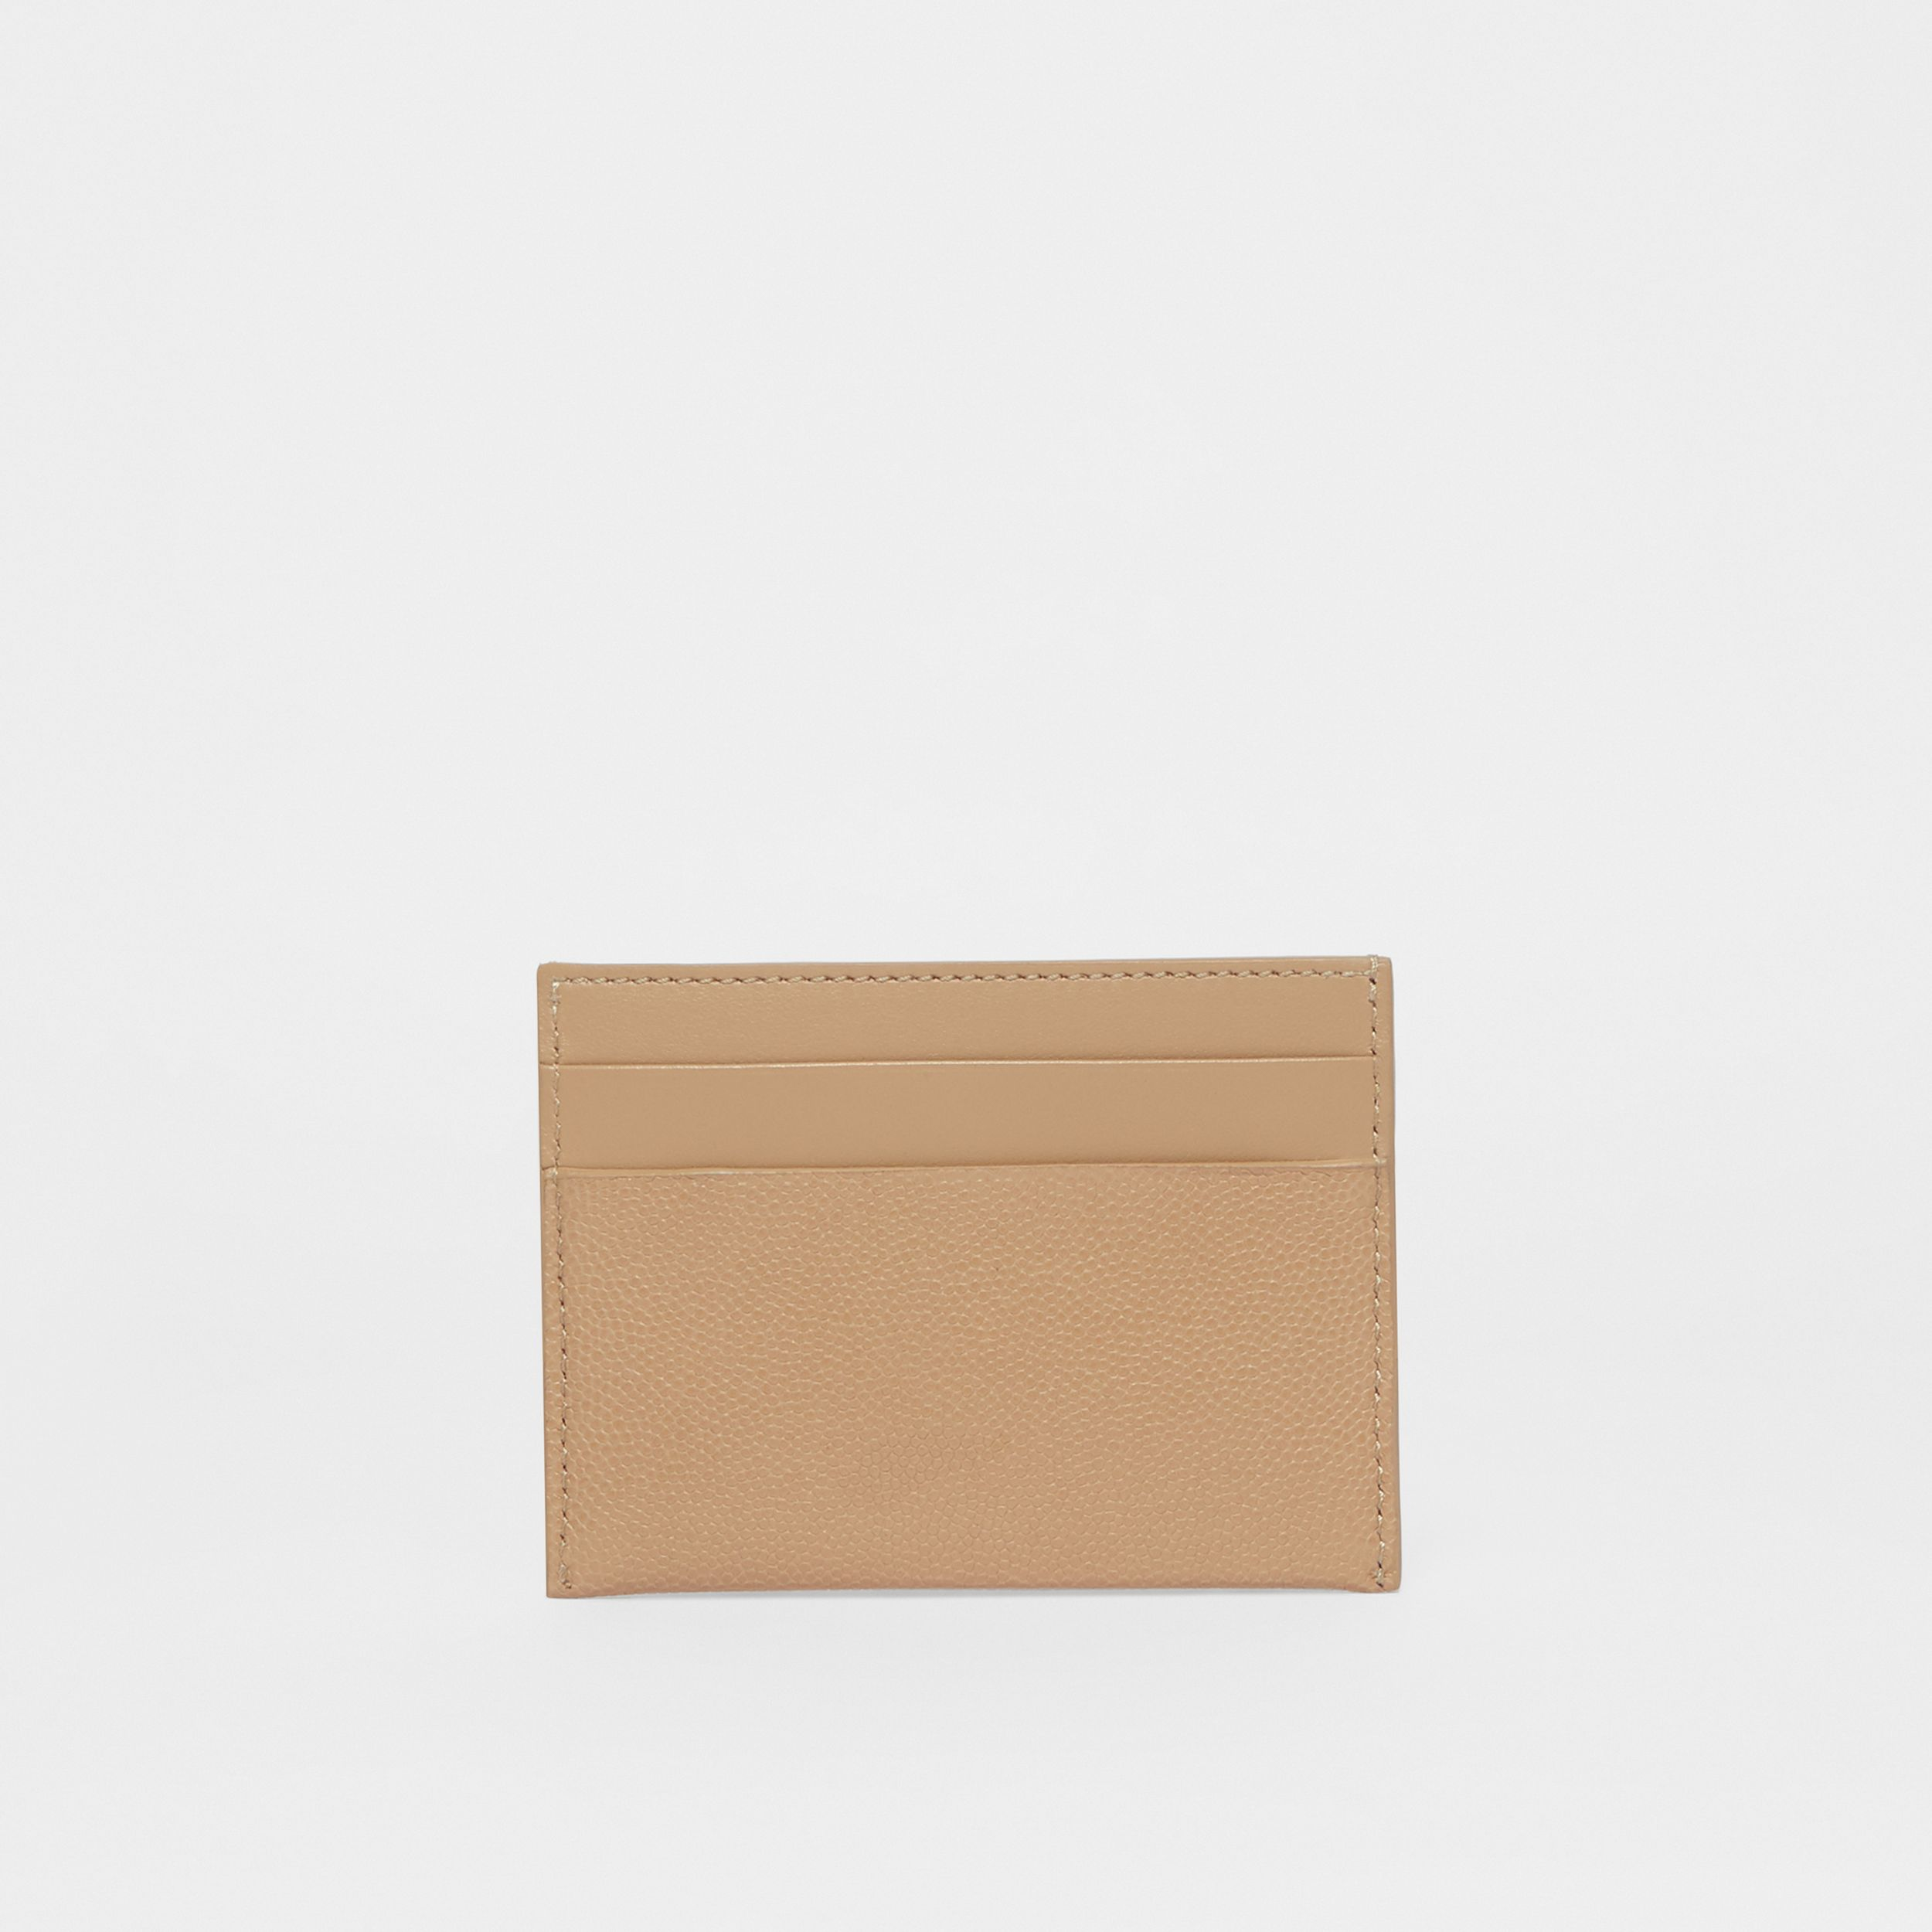 Monogram Motif Leather Card Case in Archive Beige - Women | Burberry Australia - 4